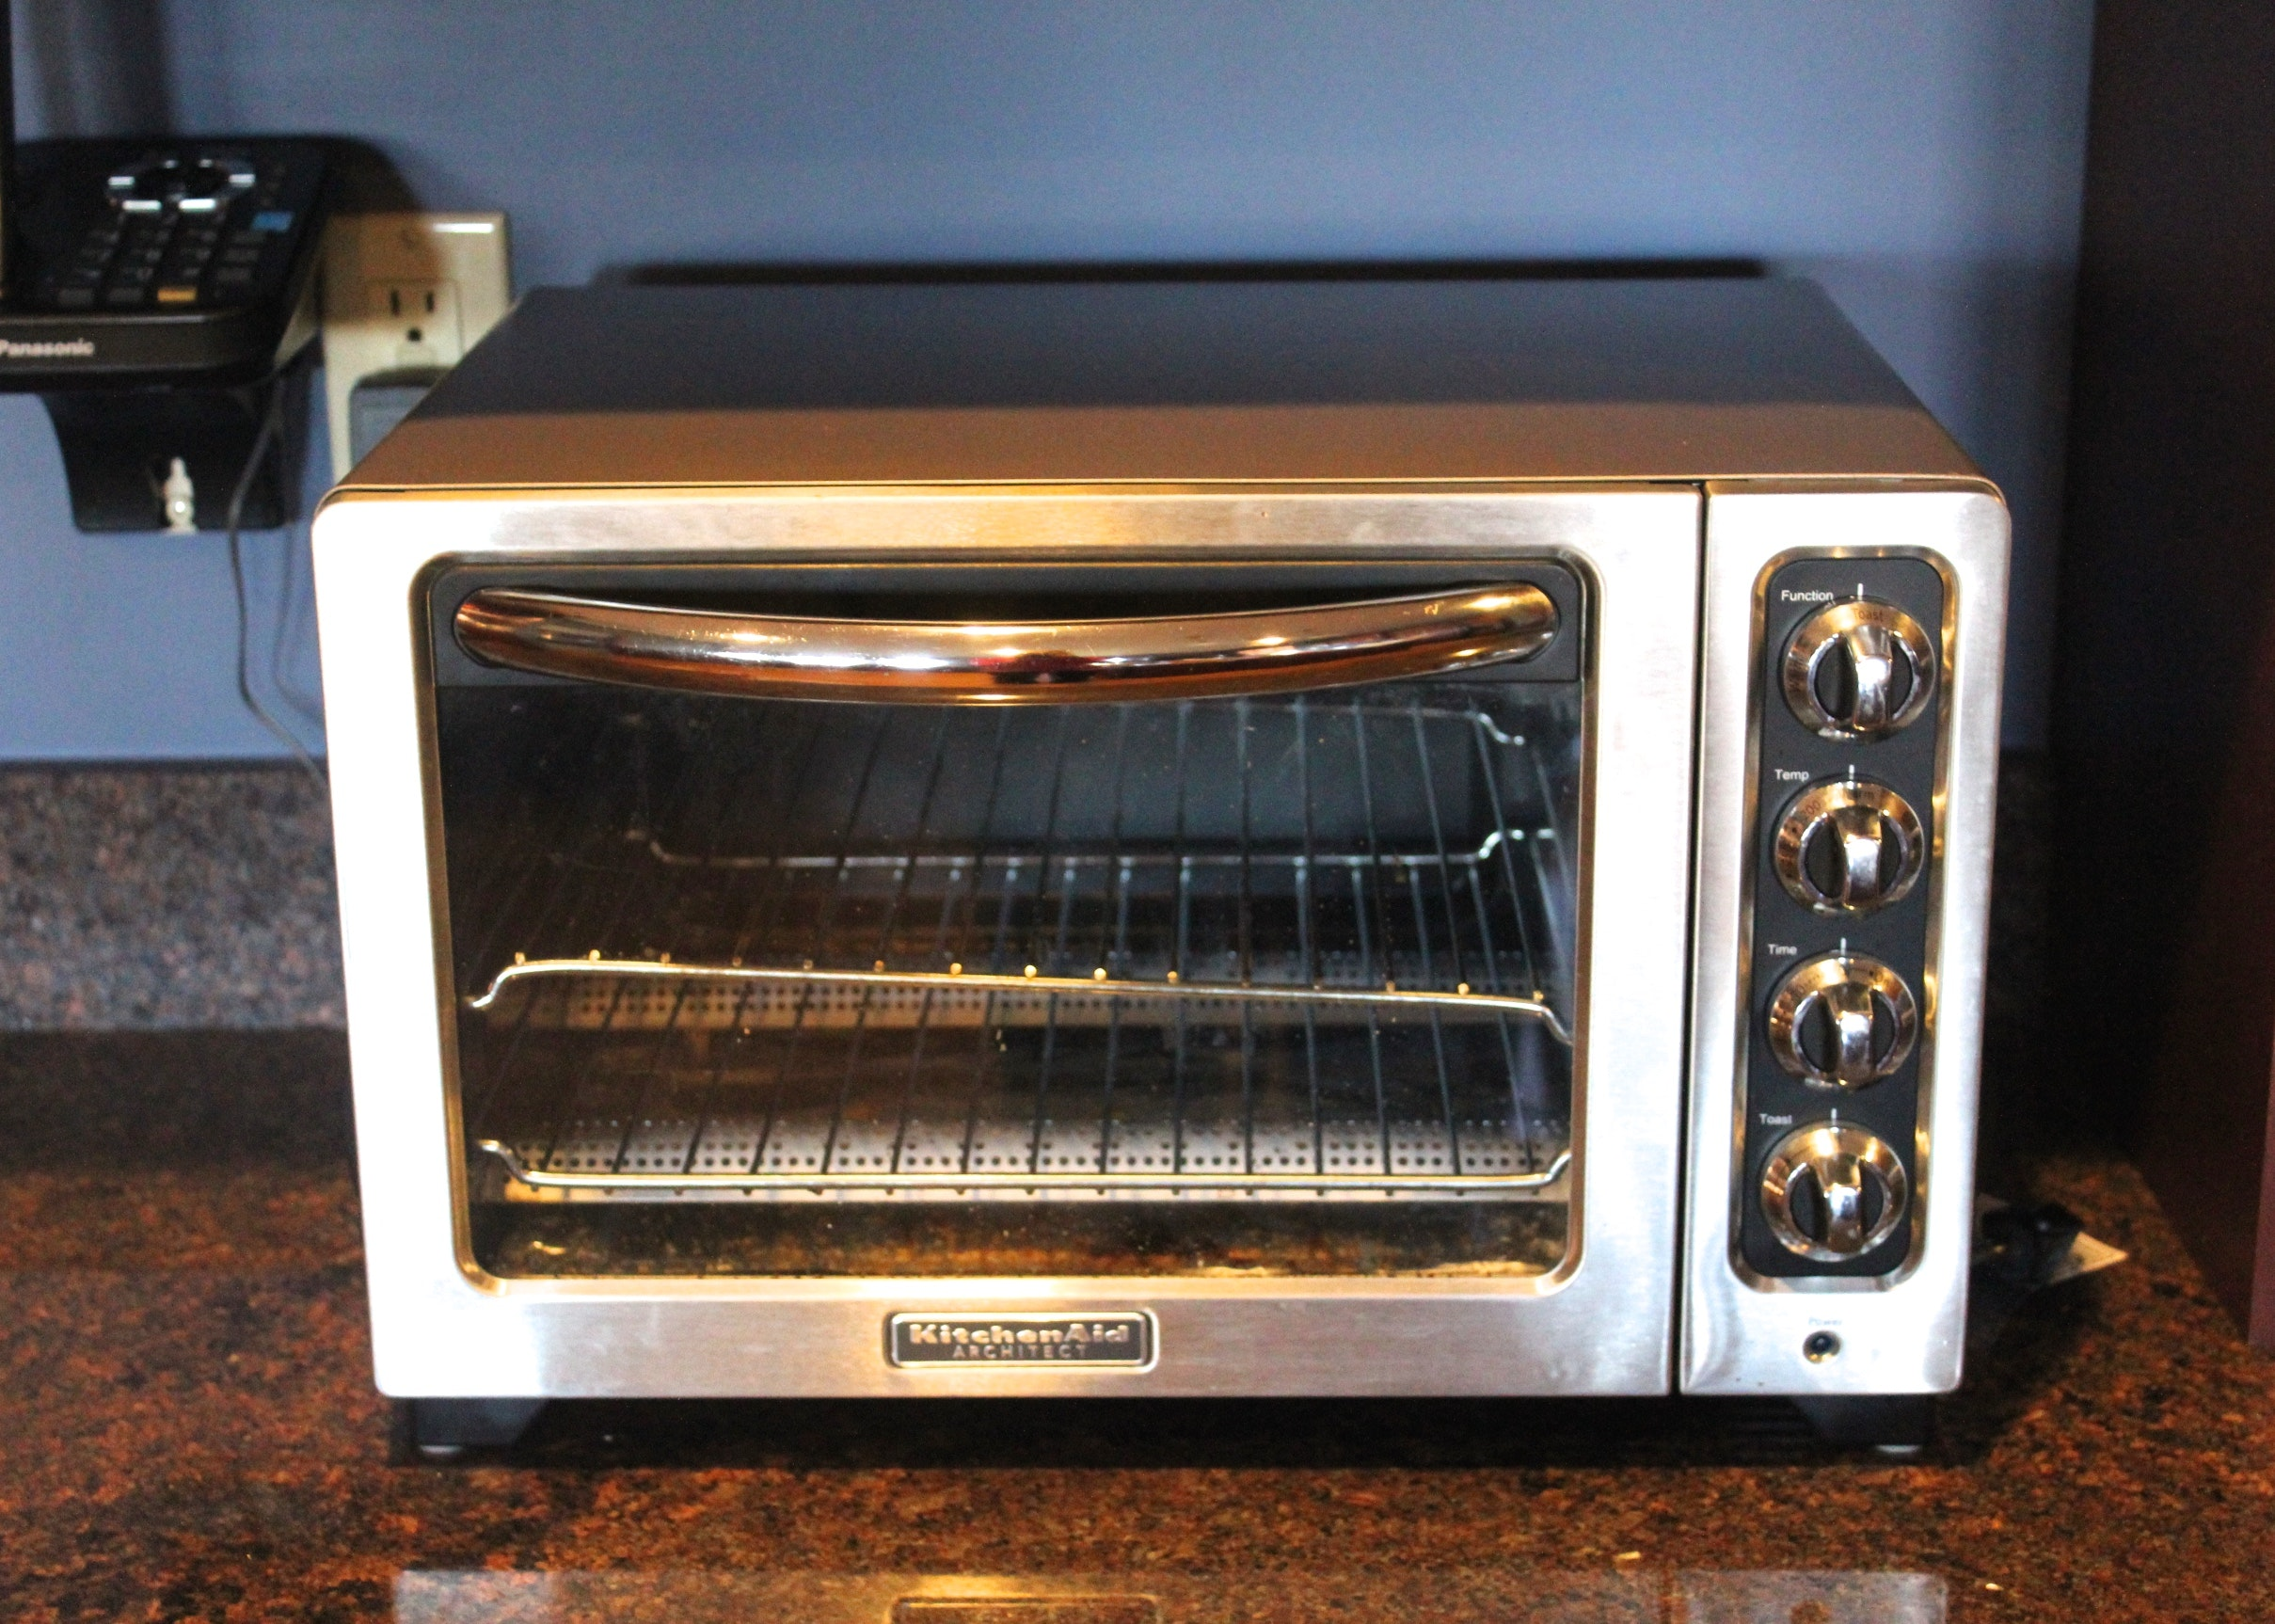 ... Toaster Oven Electrics Vintage Kitchenware Auctions Vintage Housewares  Auction Kitchenaid Architect ...